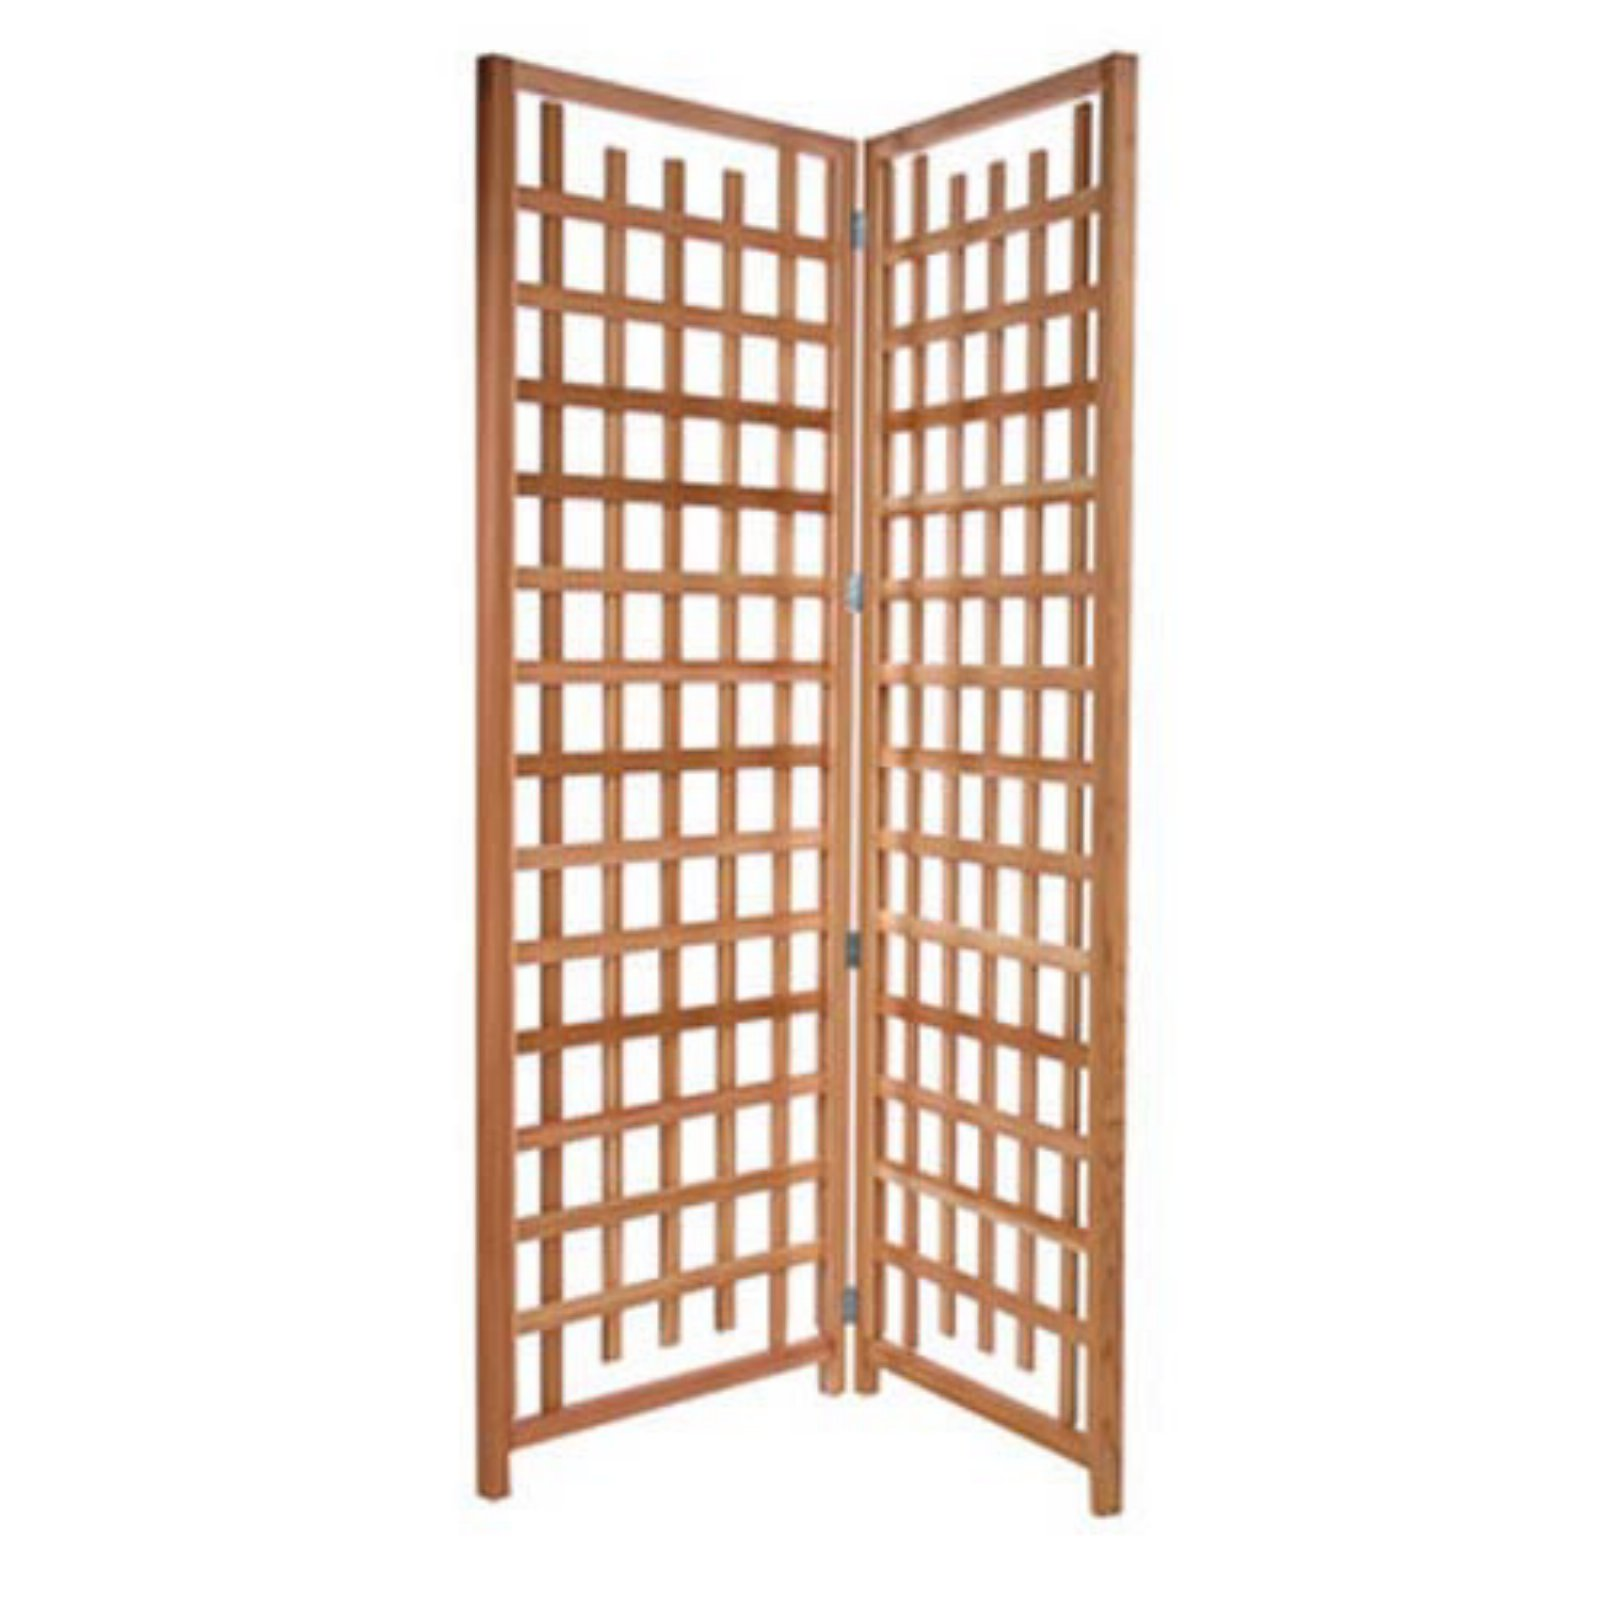 All Things Cedar 7 ft. Cedar Wood Privacy Screen Trellis by All Things Cedar